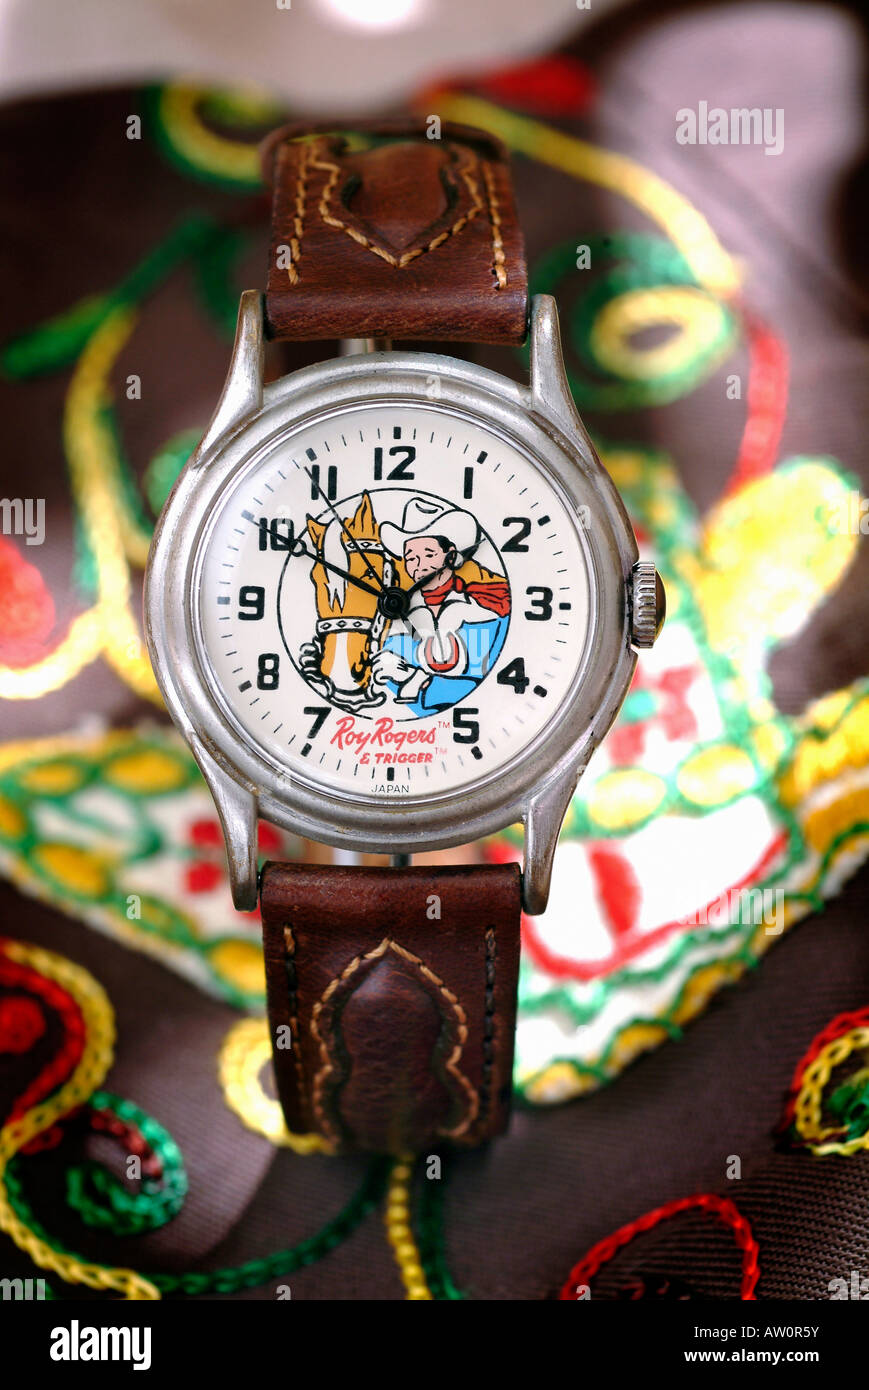 Collectable Roy Rogers watch, made by Fossil. - Stock Image